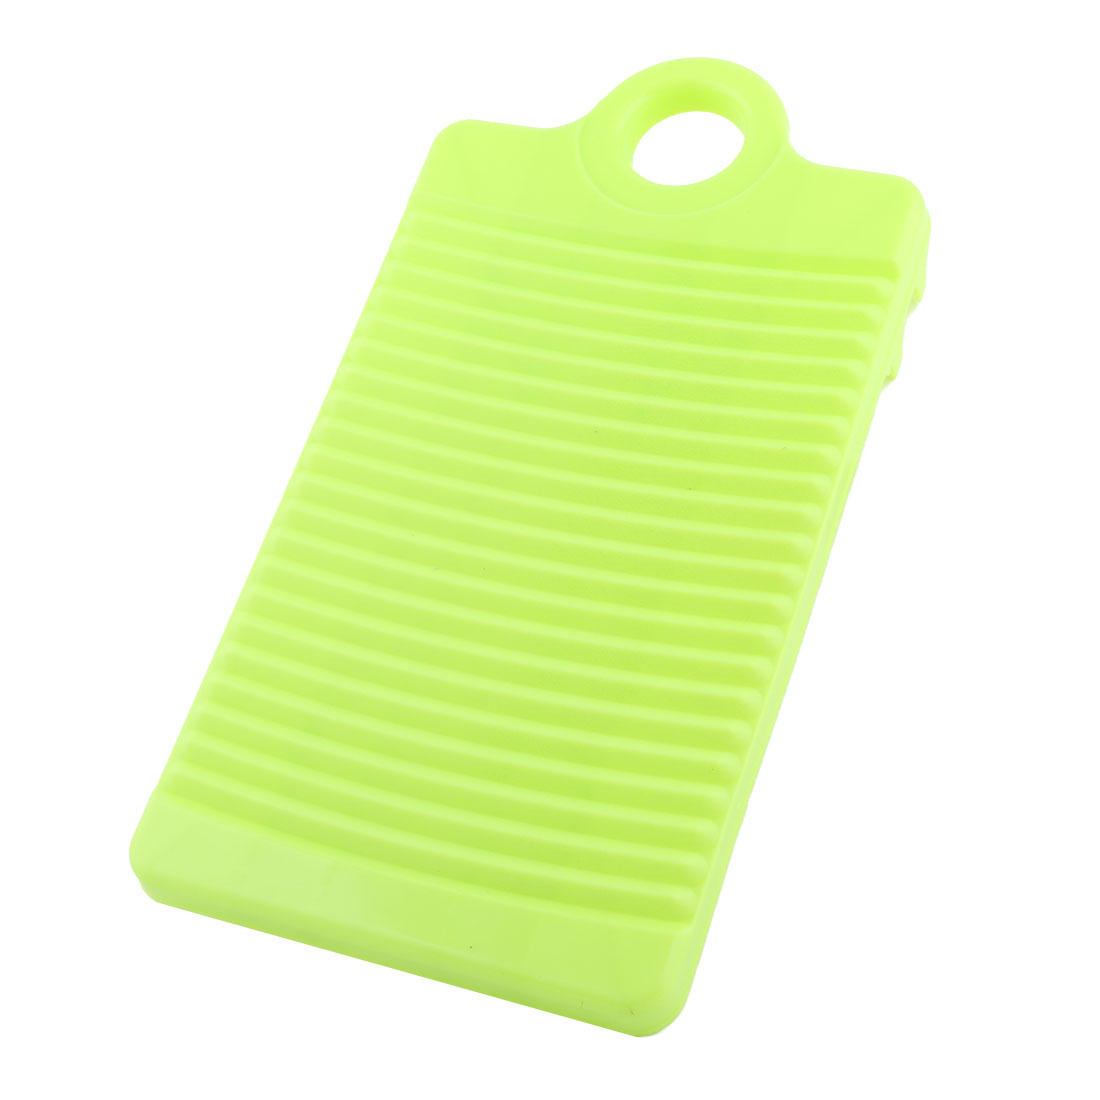 Laundry Bathroom Plastic Rectangle Clothes Garment Pants Washing Board Plate Light Green